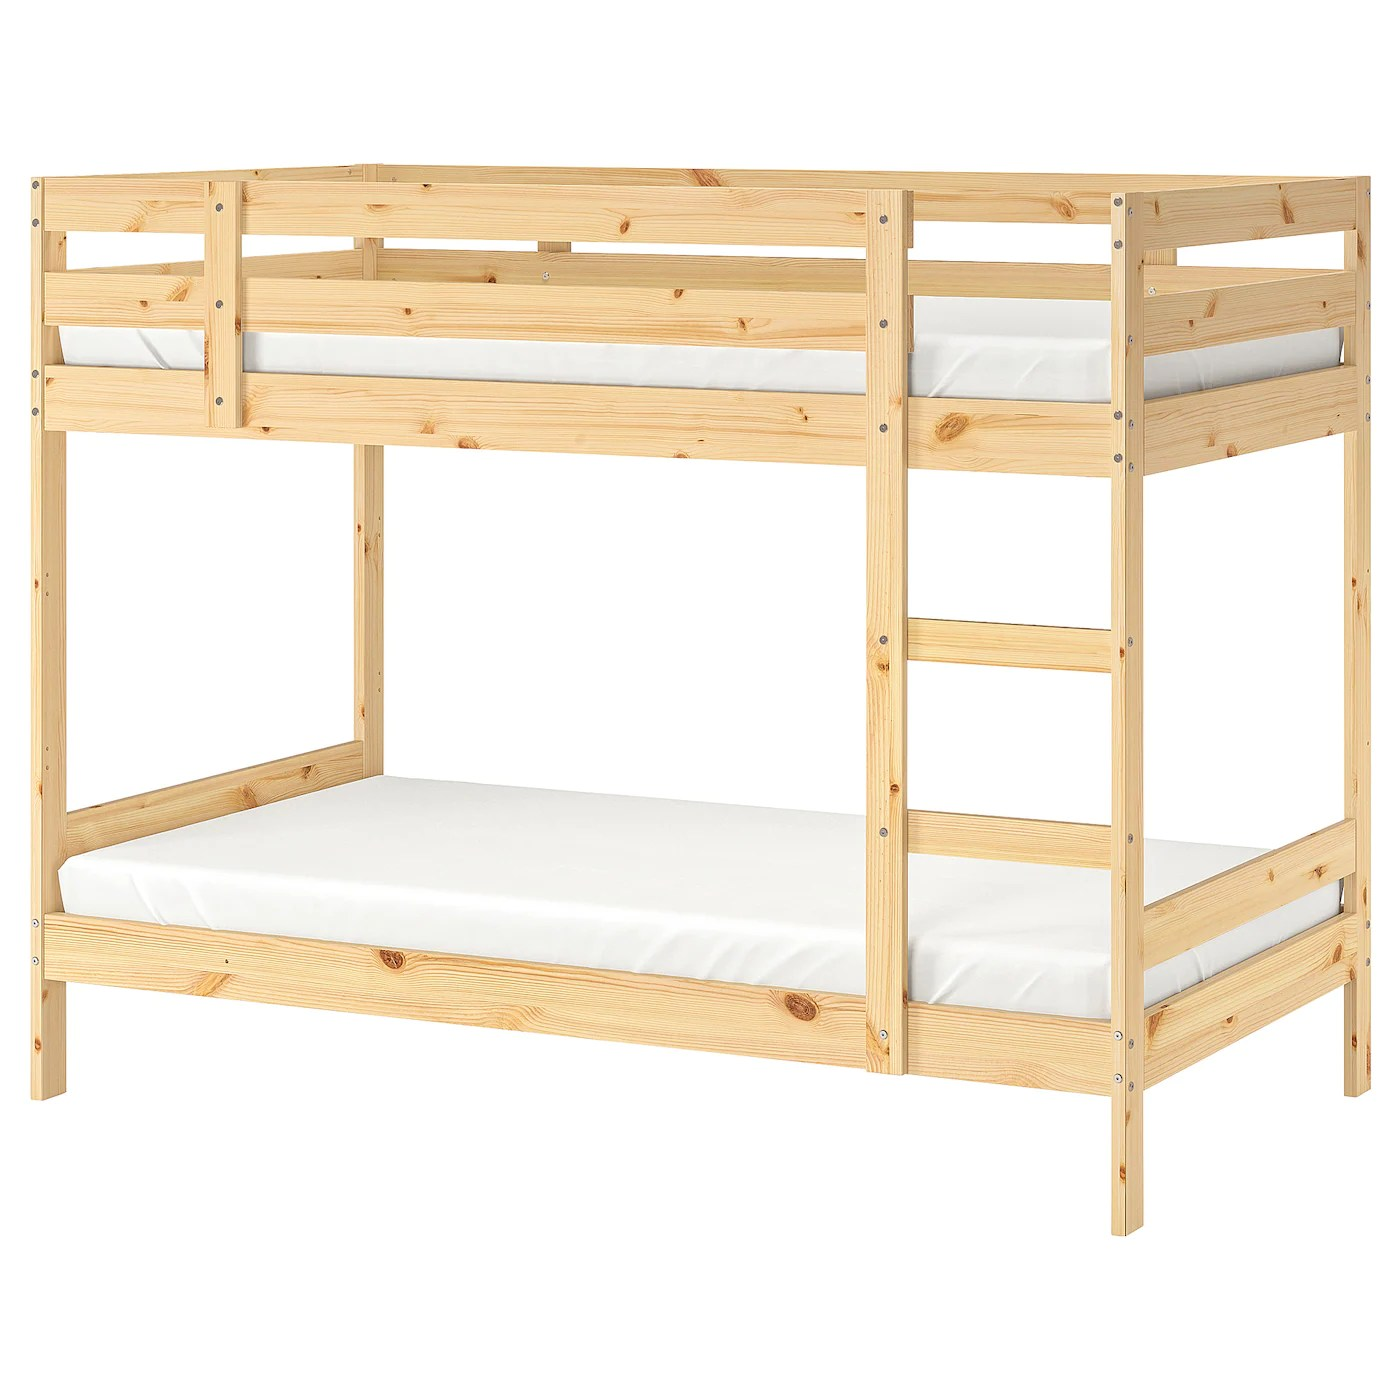 Houten Bed 1 Persoons Houten Bed 1 Persoons Affordable Persons Bed With Houten Bed 1